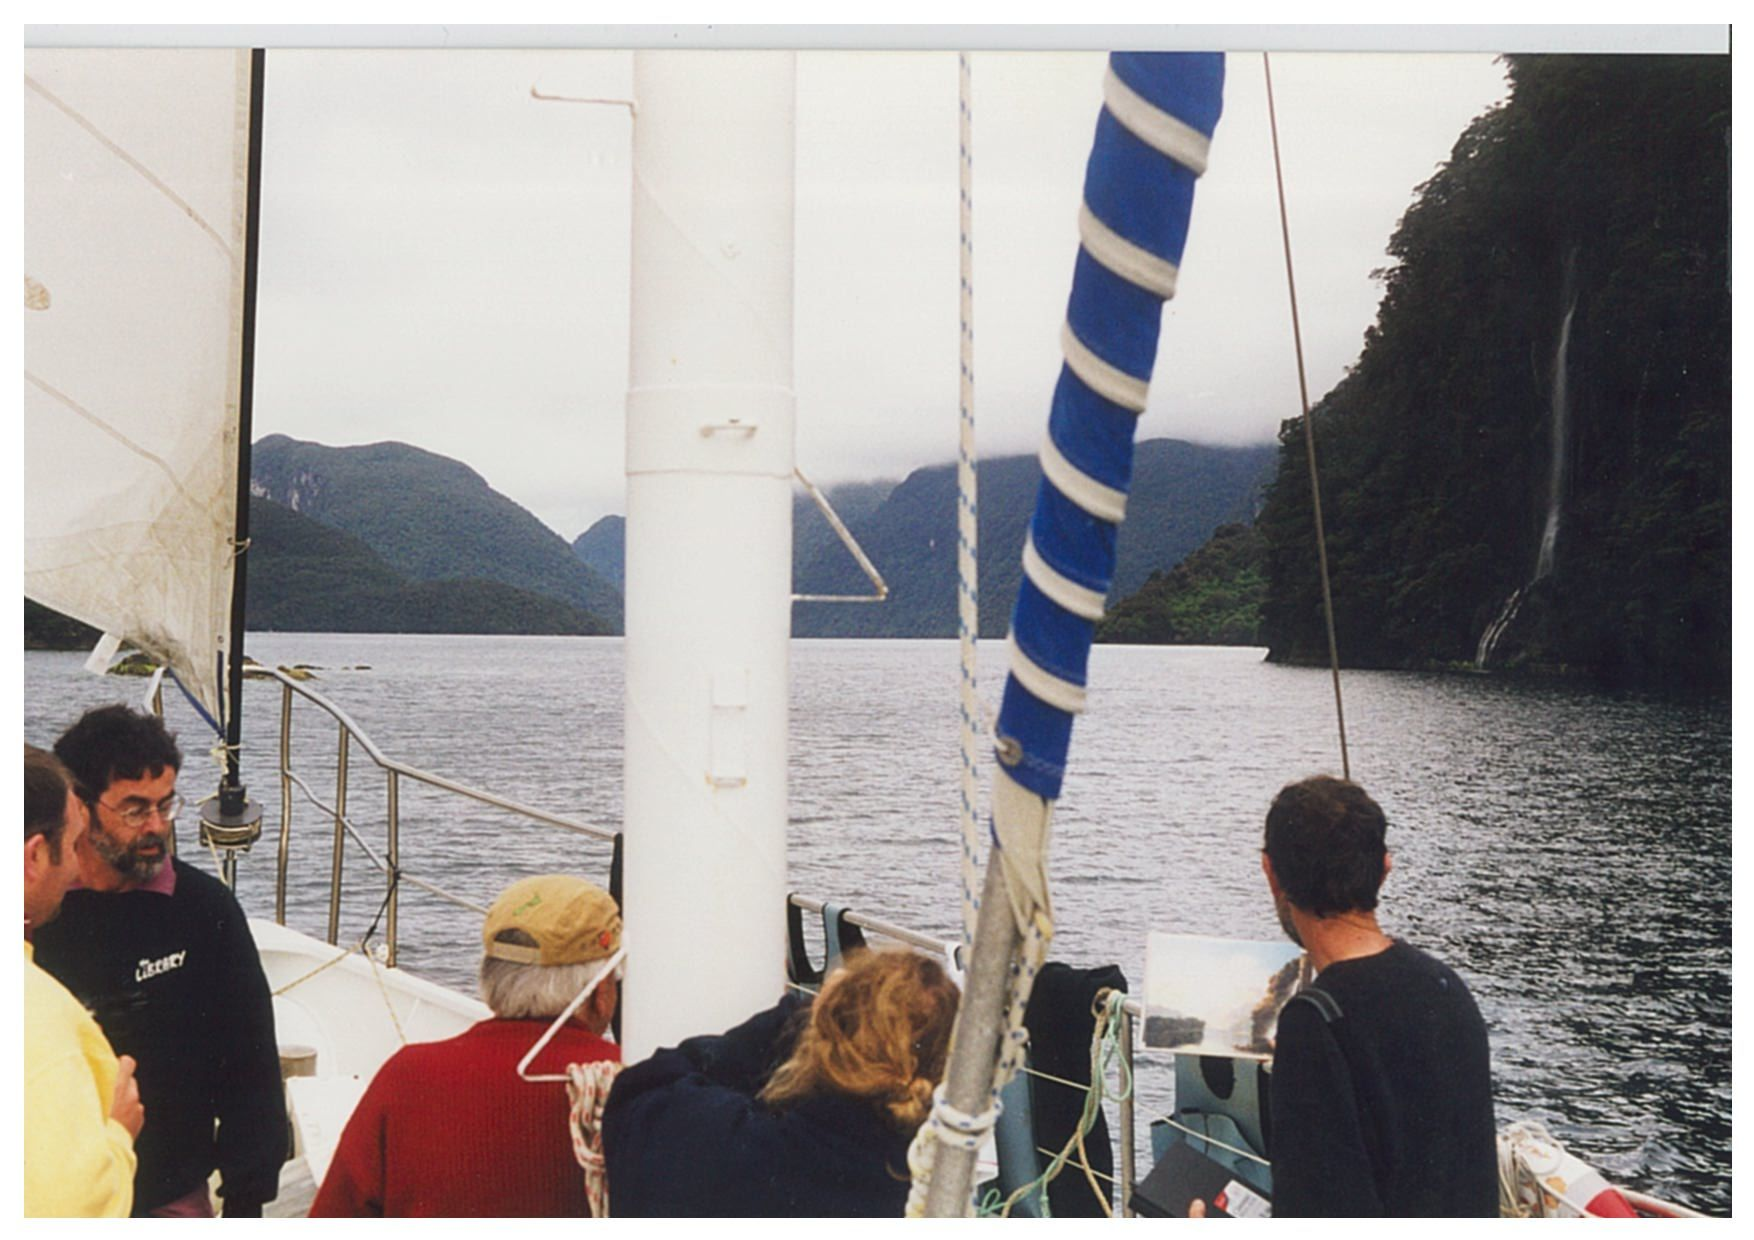 People on a boat in Tamatea, Dusky Sound, looking at the site of Hodges' painting